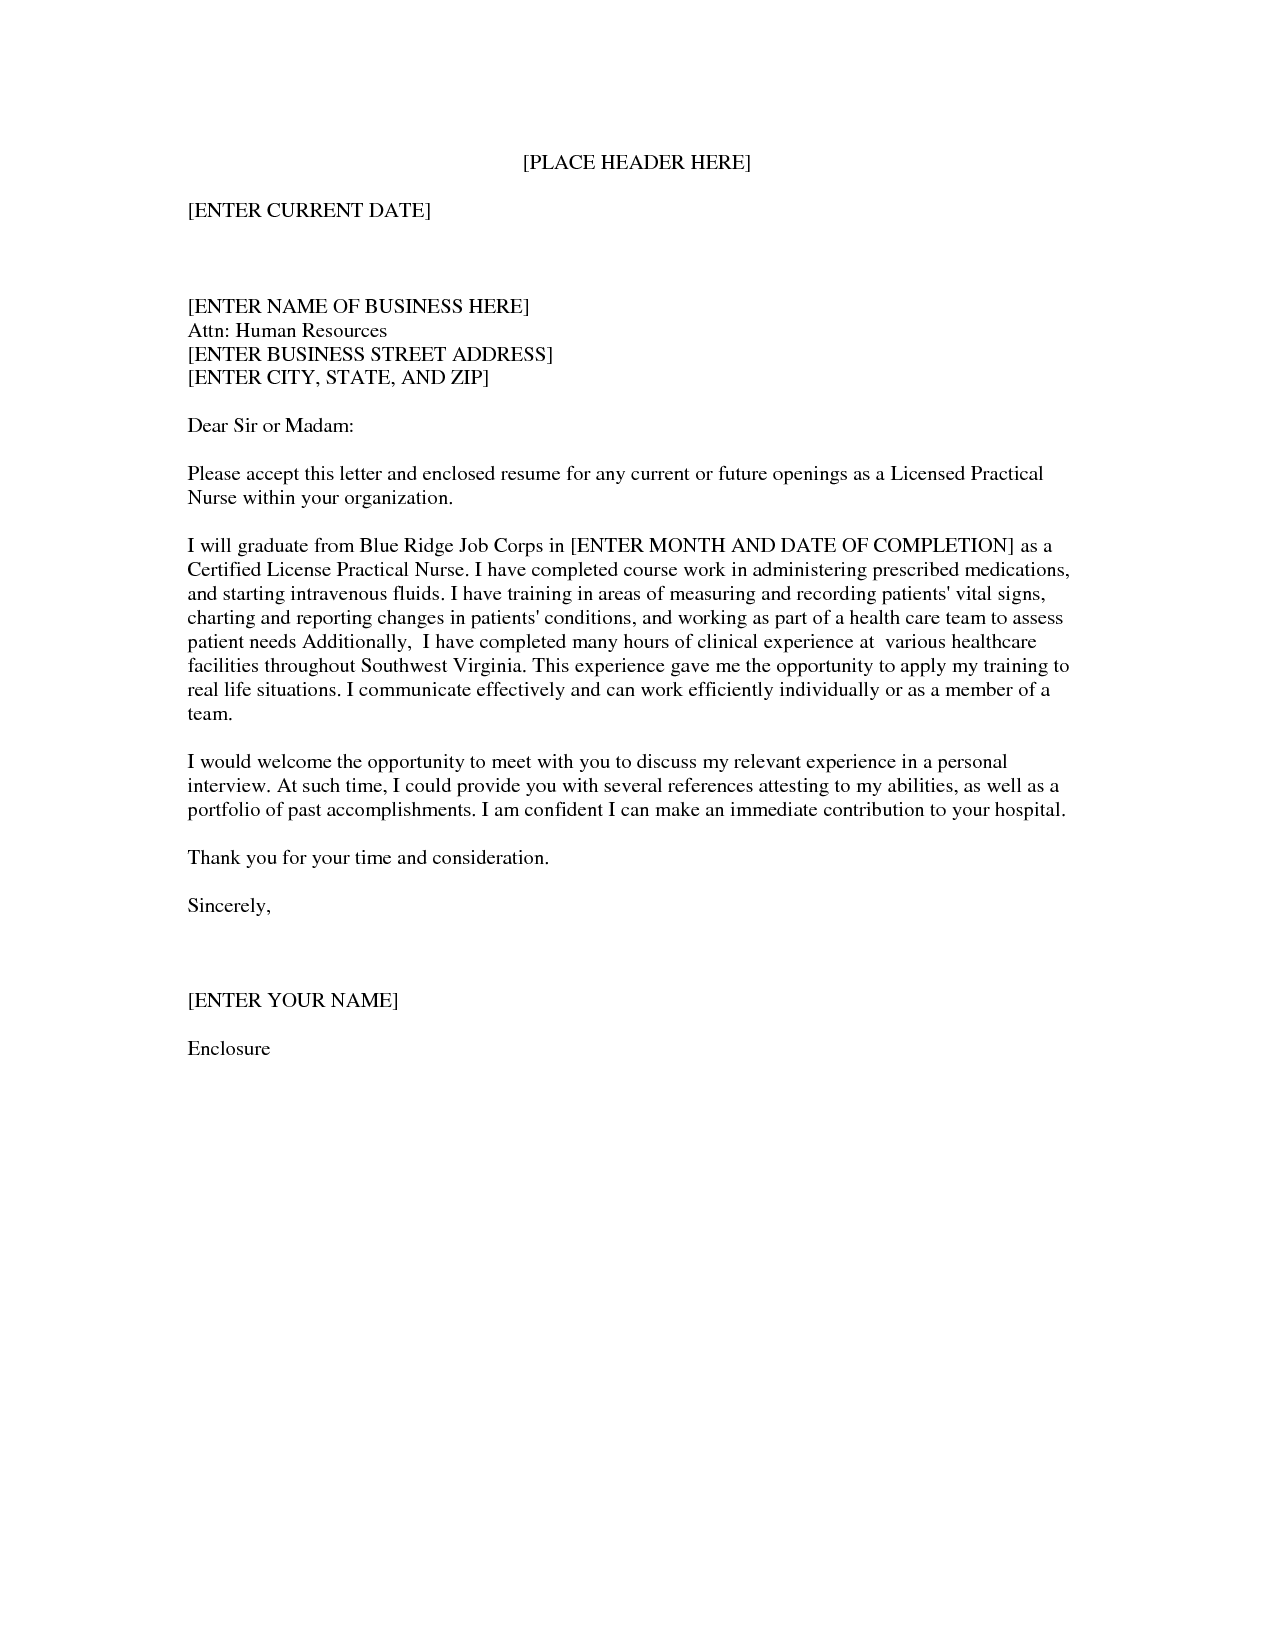 lpn nursing cover letter sample